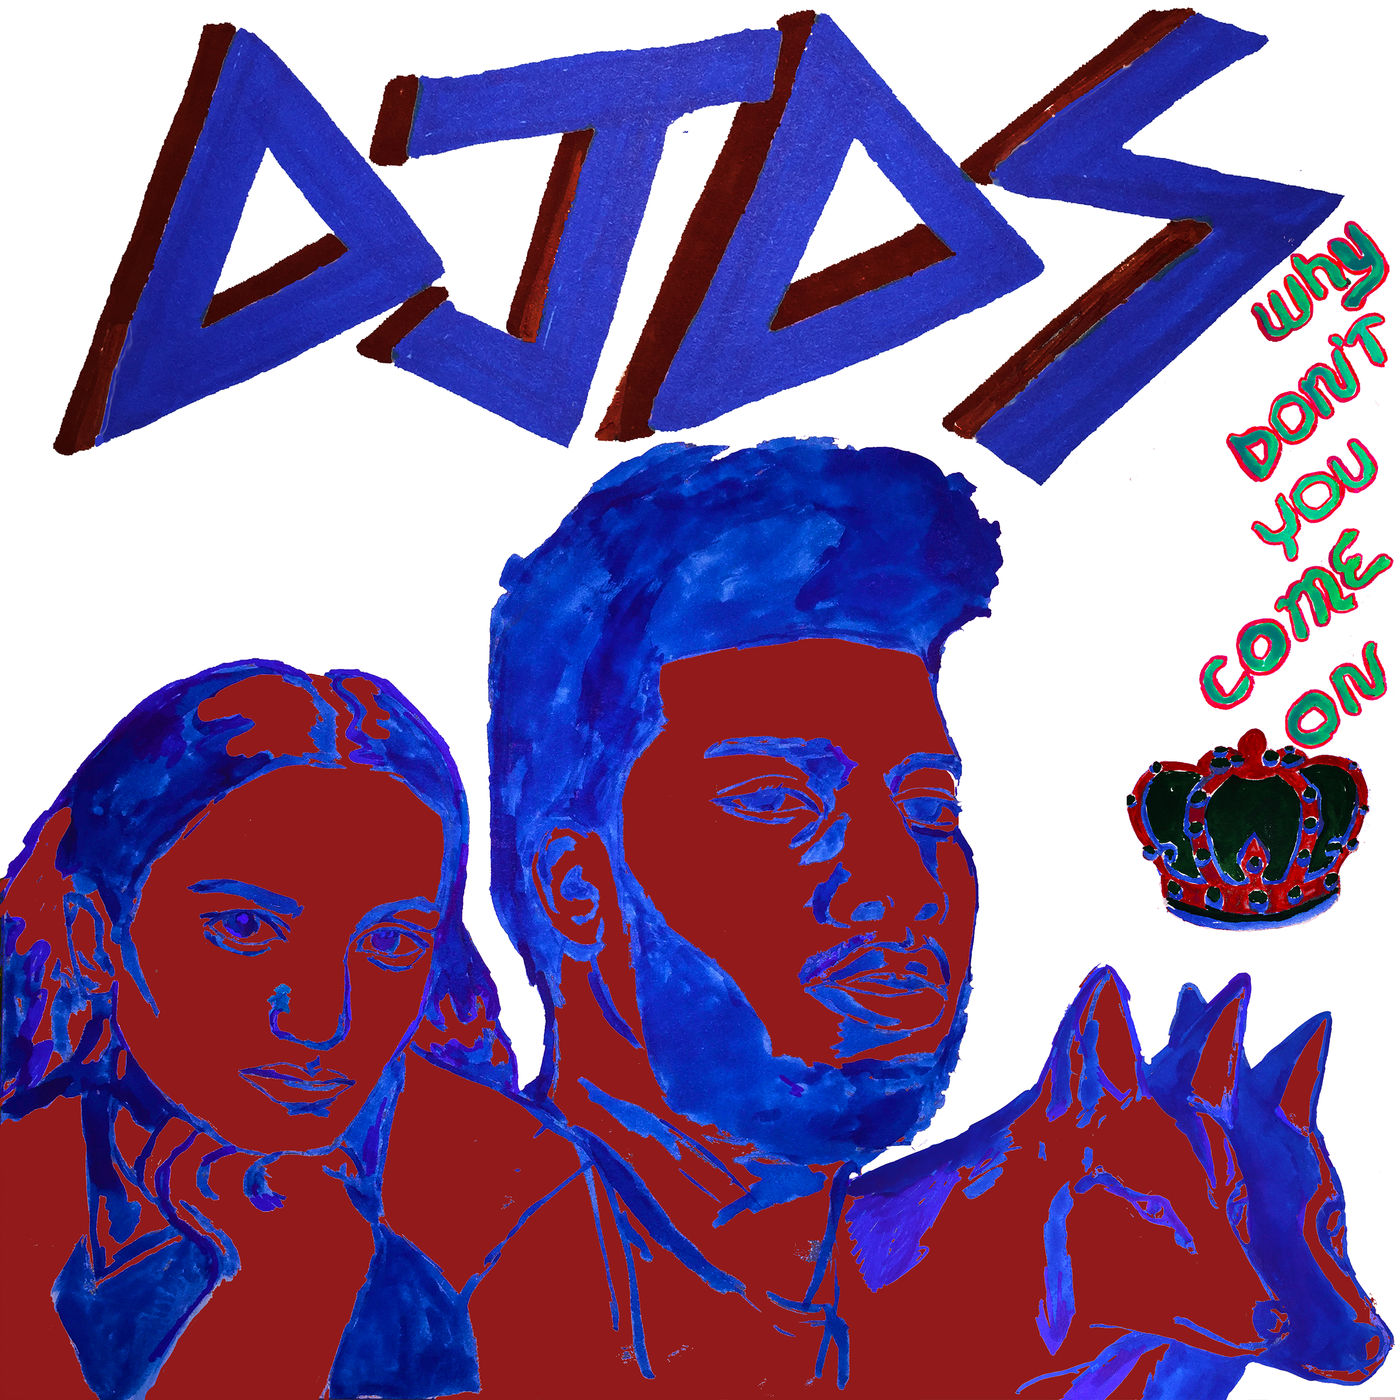 DJDS - Why Don't You Come On (feat. Khalid & Empress Of) - Single